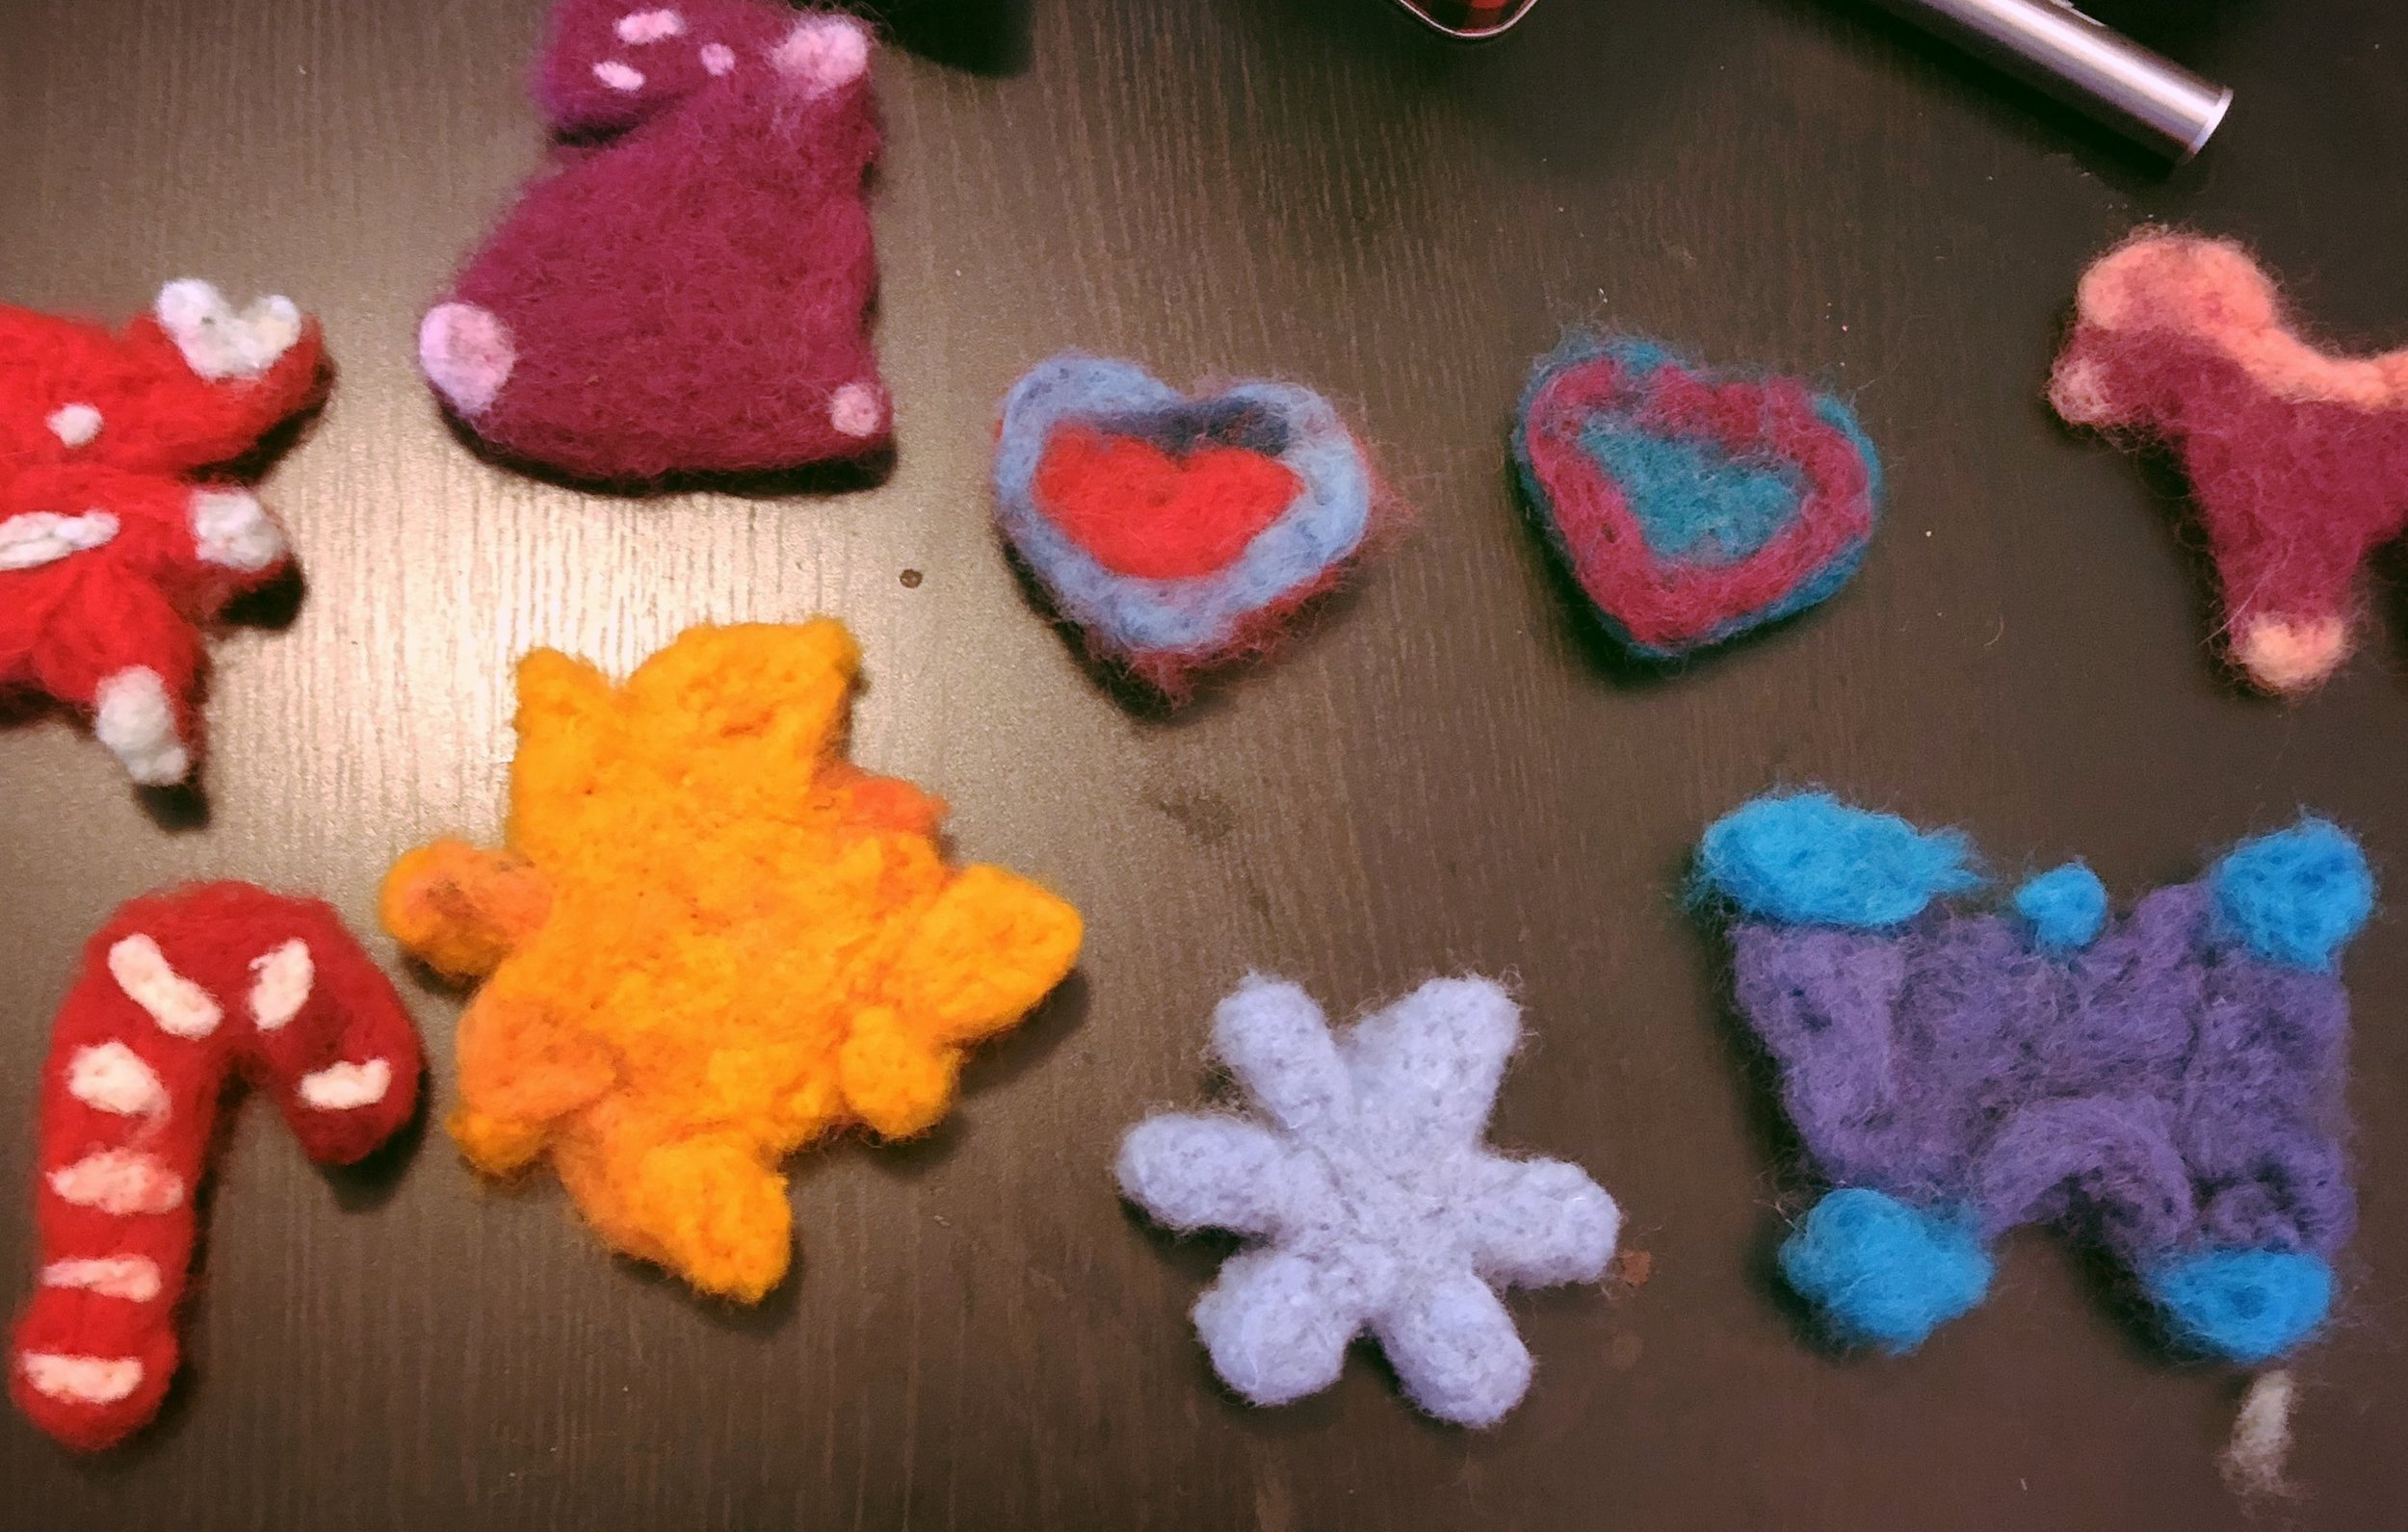 Needle Felted Gifts - With Ms Leslie